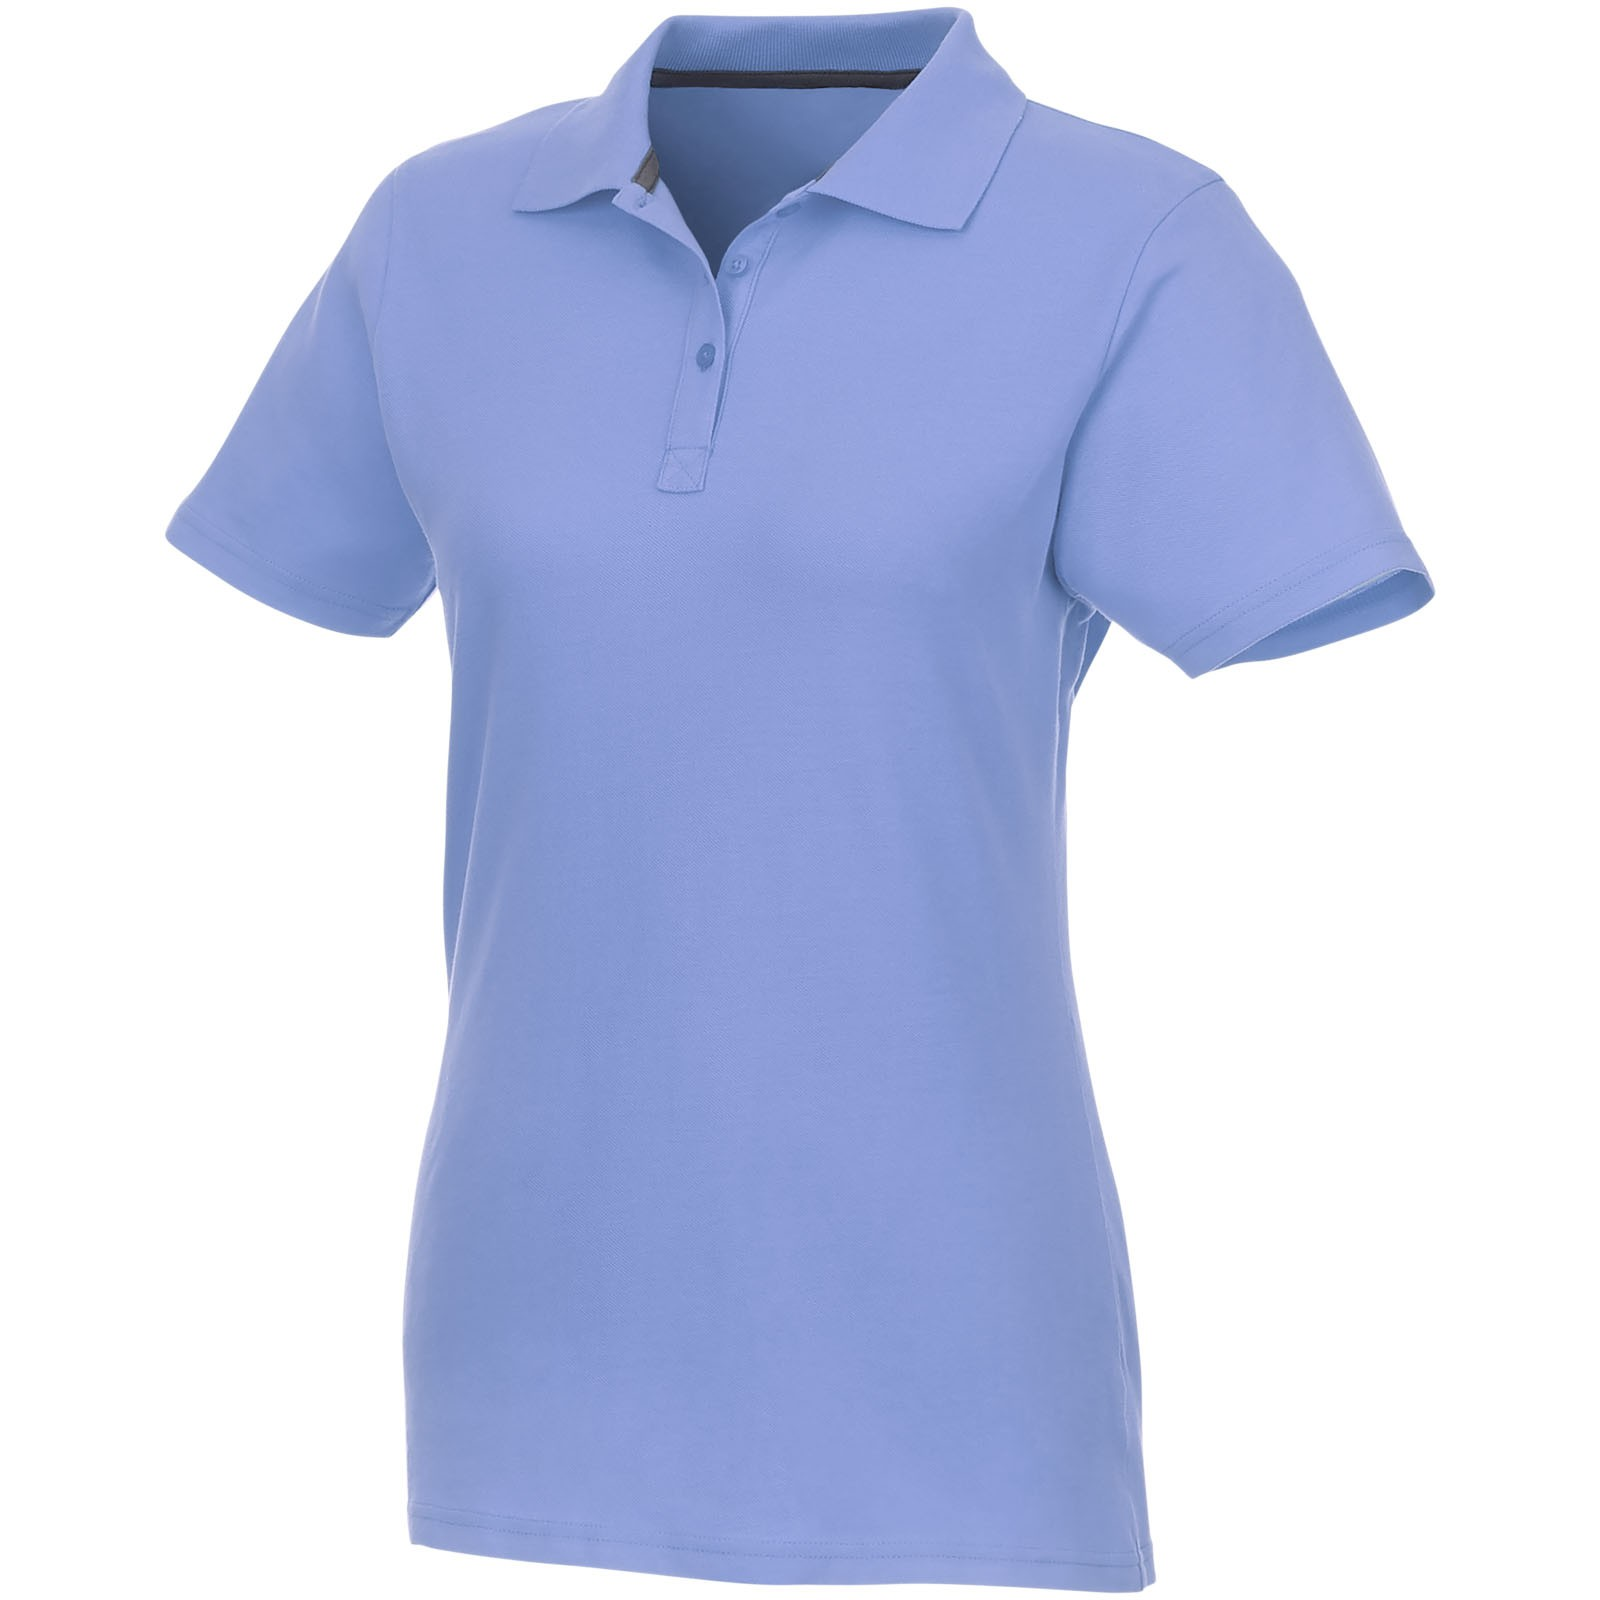 Helios short sleeve women's polo - Light blue / S